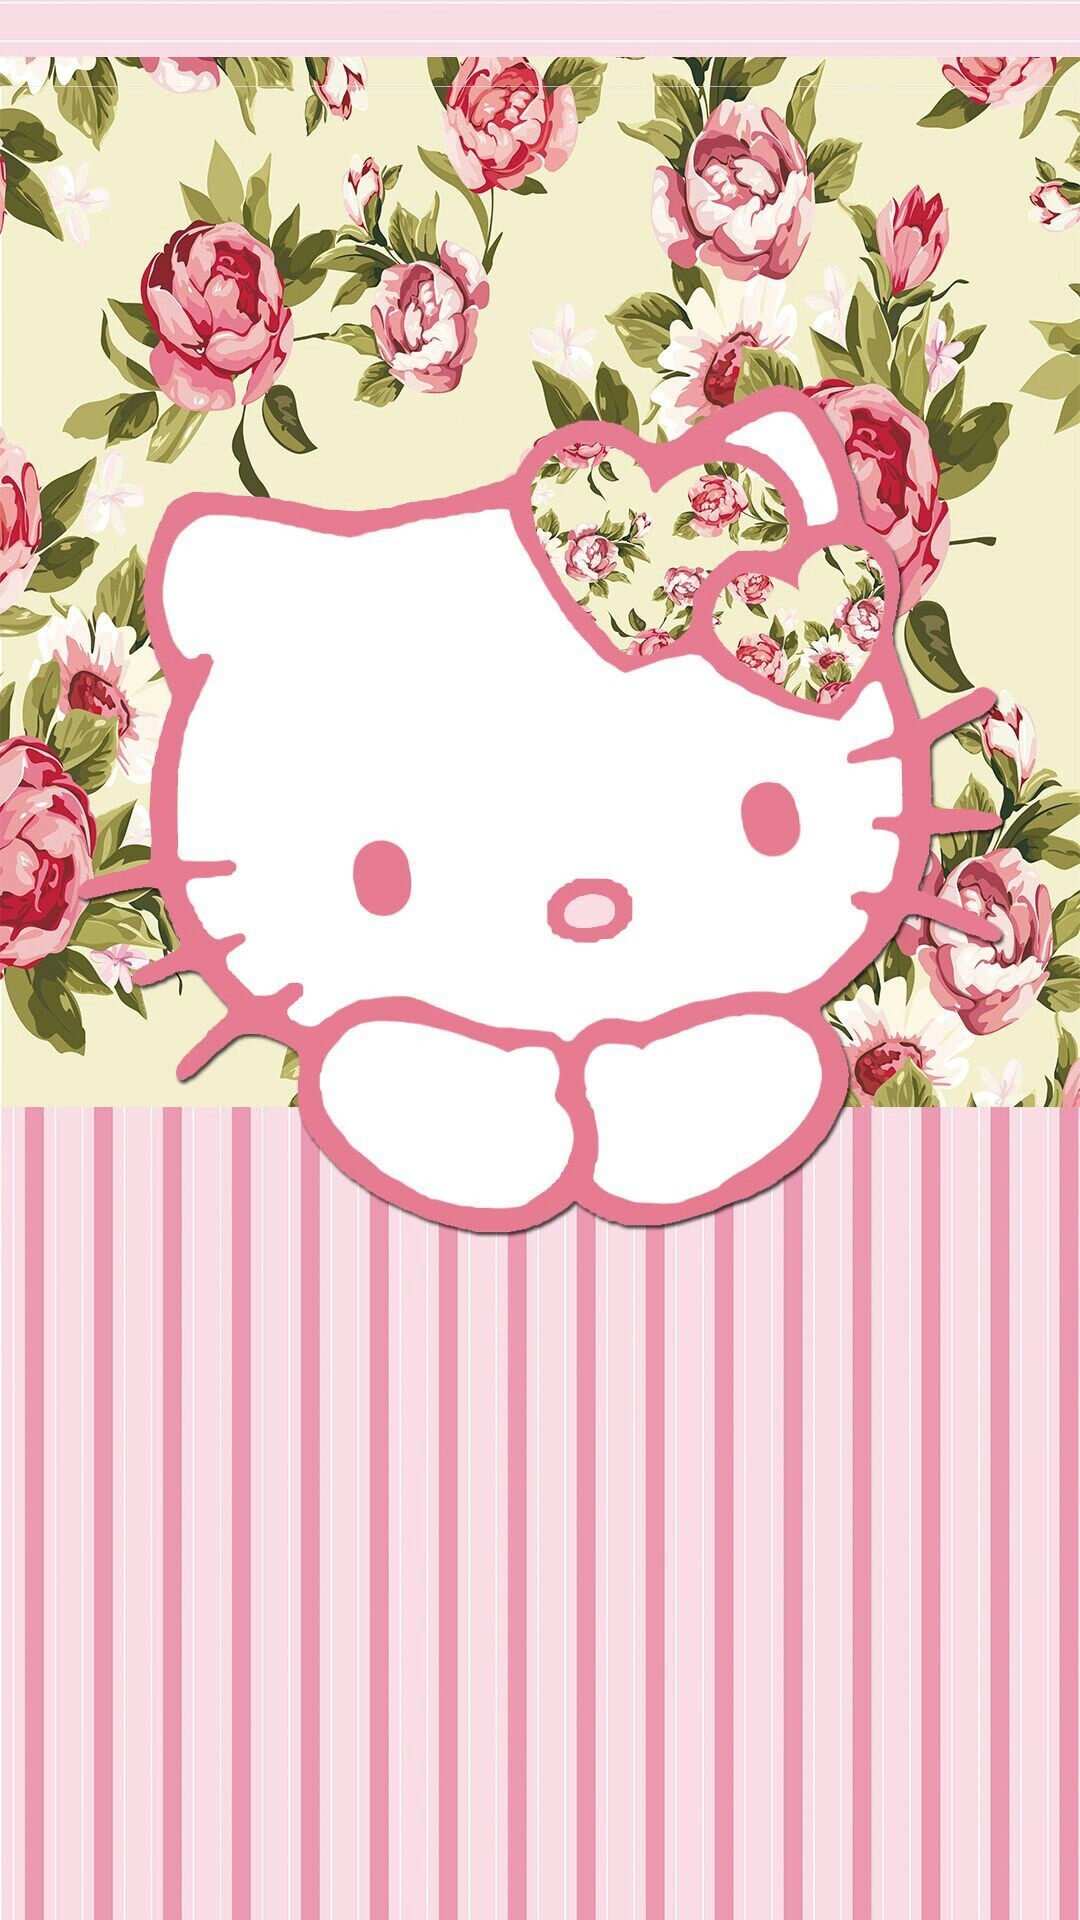 Most Inspiring Wallpaper Hello Kitty Light Pink - 779086-top-wallpaper-background-hello-kitty-1080x1920-for-4k-monitor  Photograph_242078.jpg